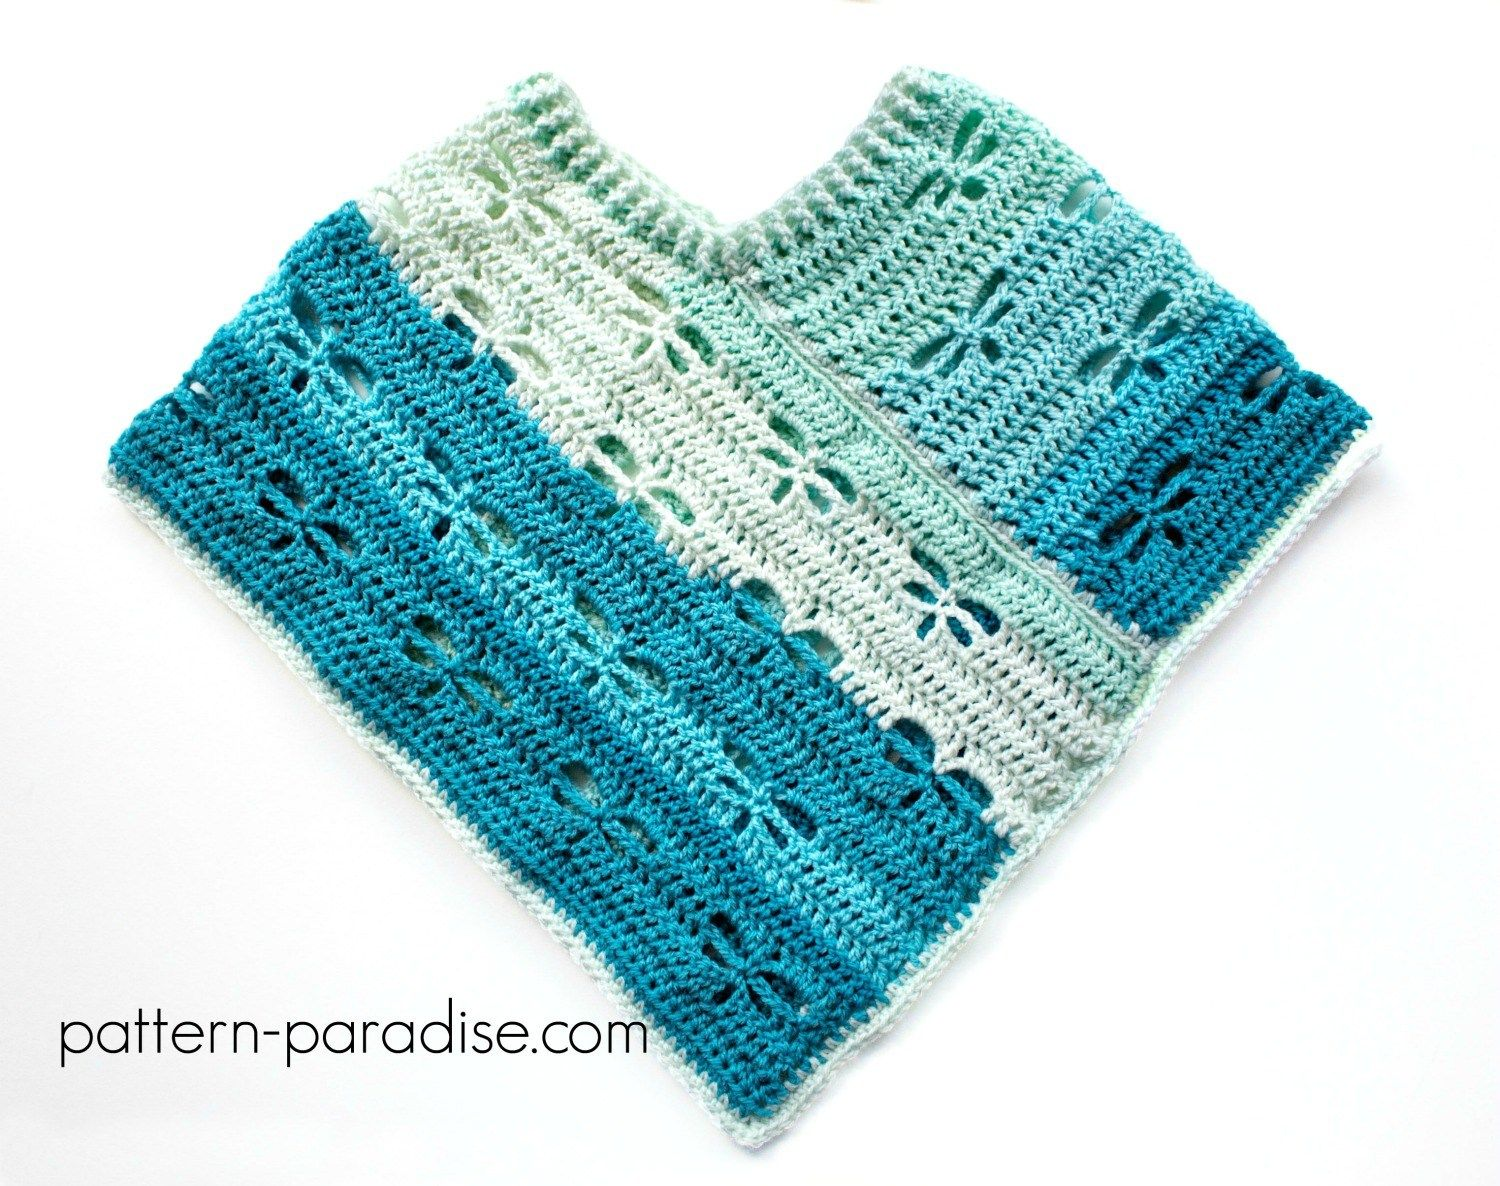 Caron Knitting Patterns : Free Crochet Patterns Featuring Caron Cakes Yarn Dragonflies, Ponchos and C...